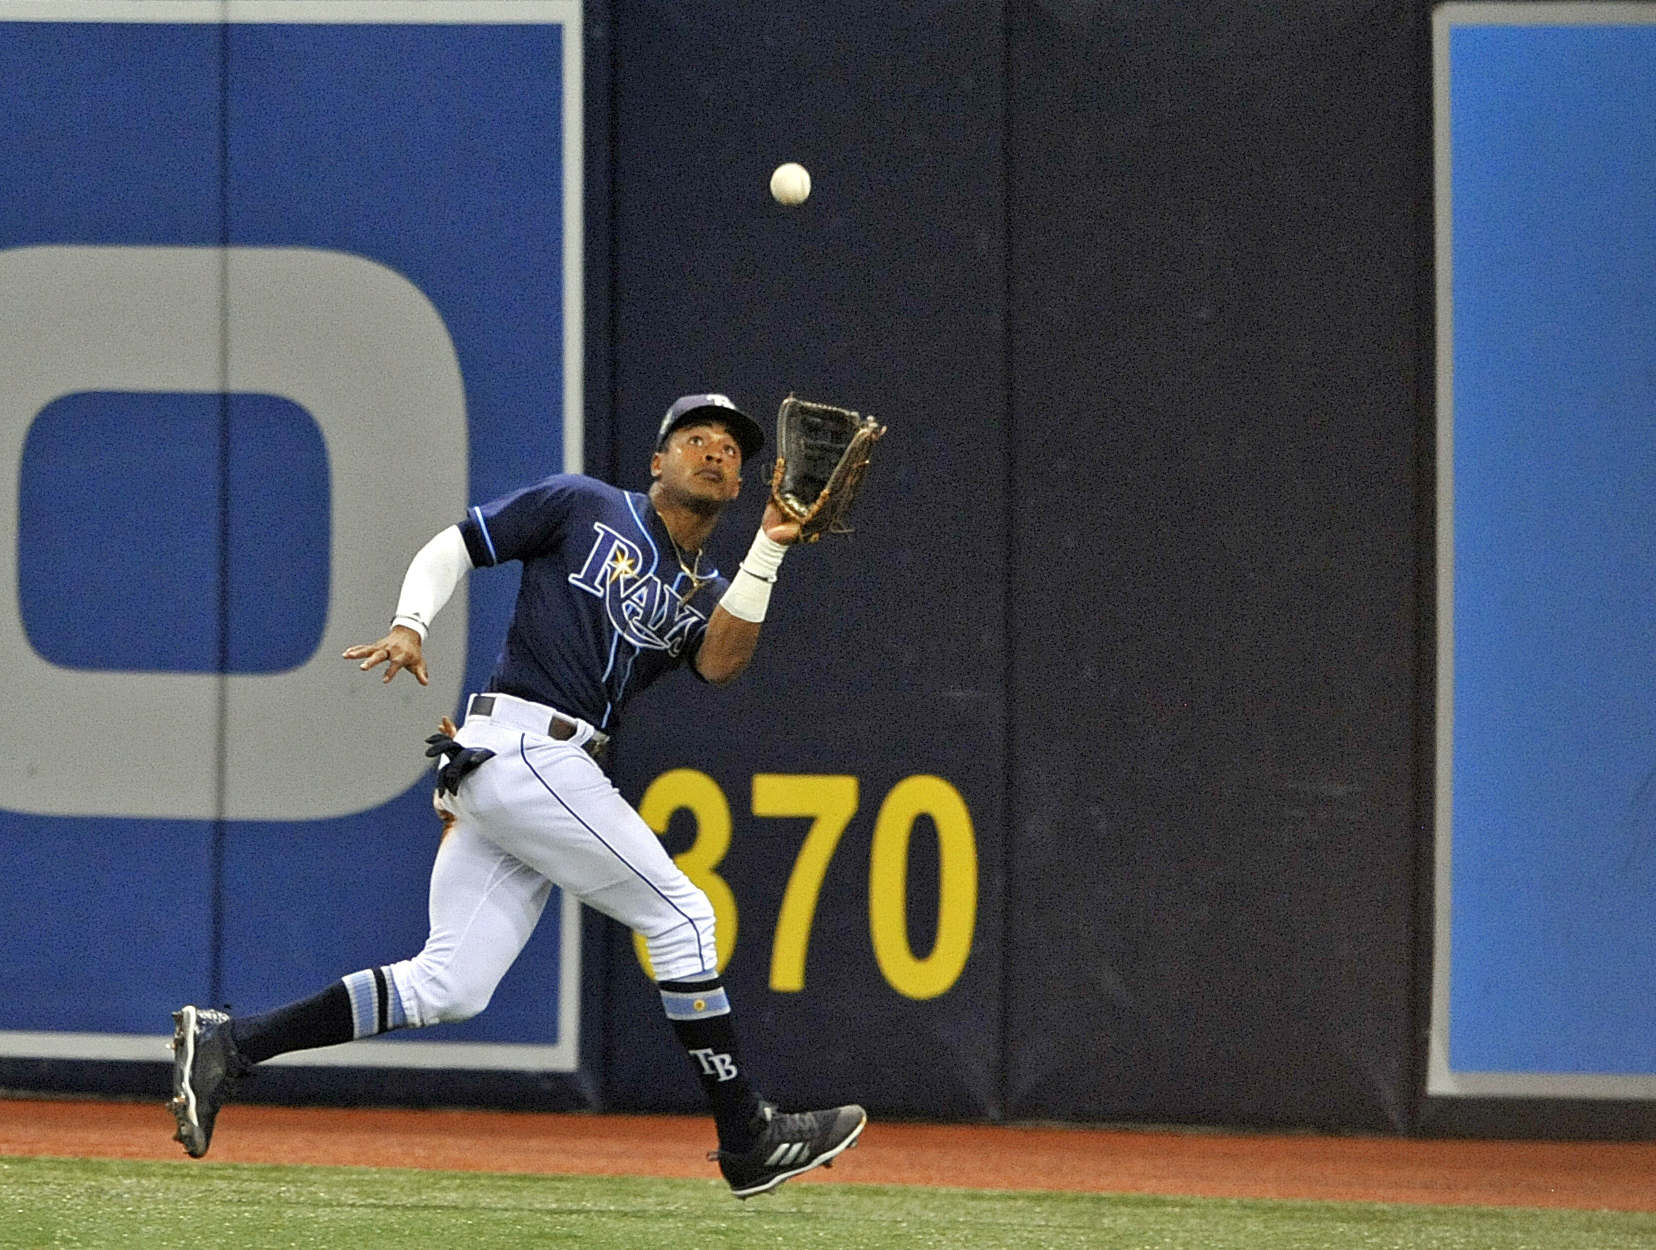 Mallex Smith dealt to Mariners by Rays for Zunino, Heredia